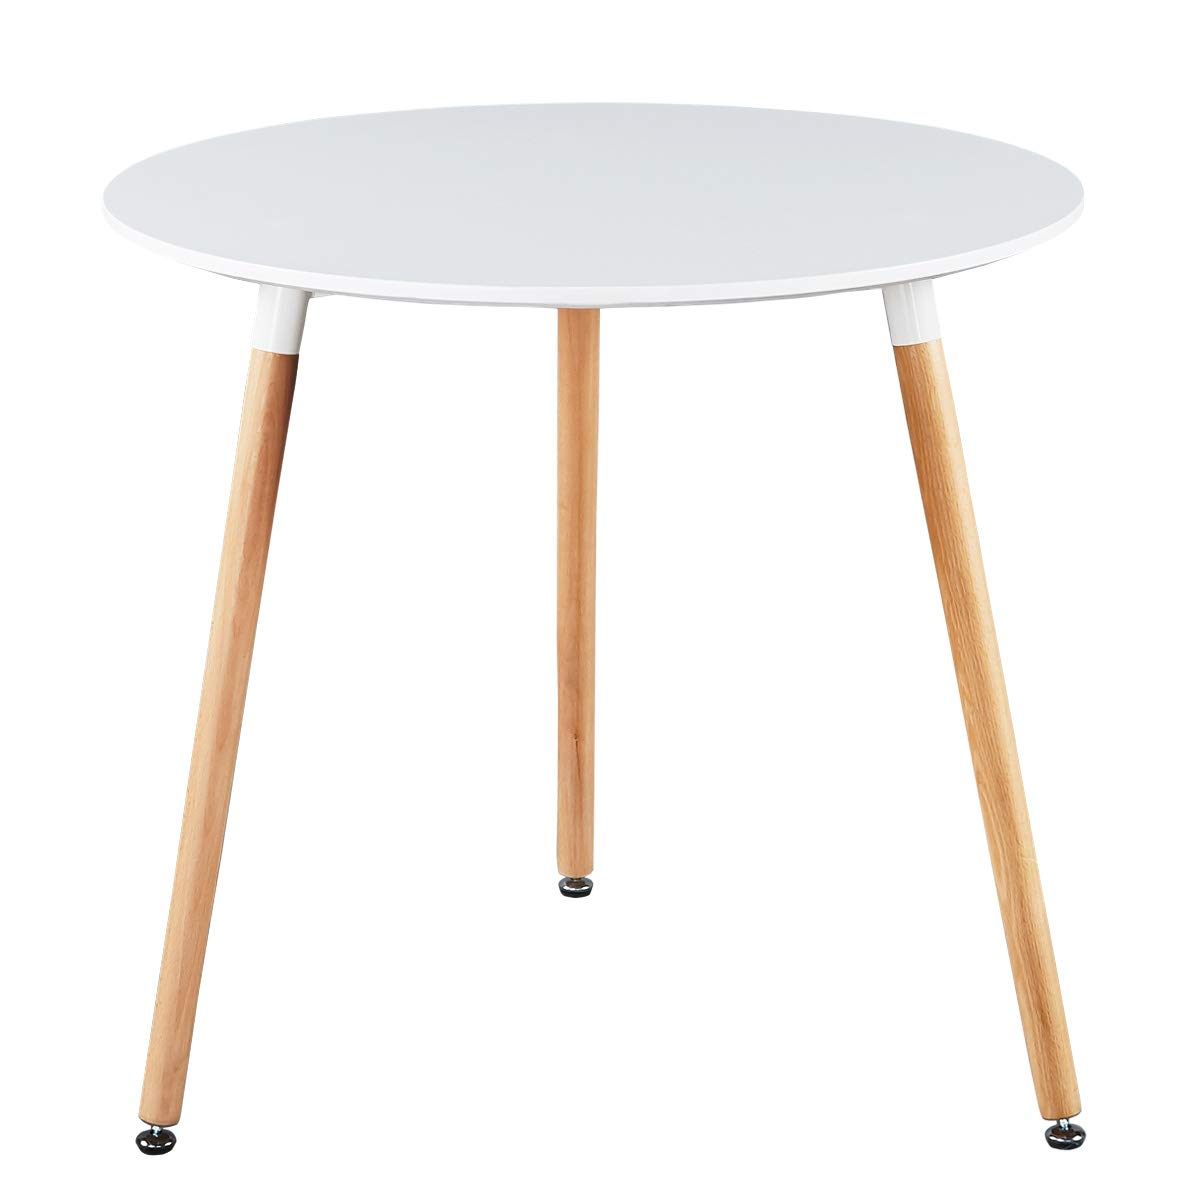 GreenForest Dining Table White Modern Round Table with Wood Legs for Kitchen Living Room Leisure Coffee Table